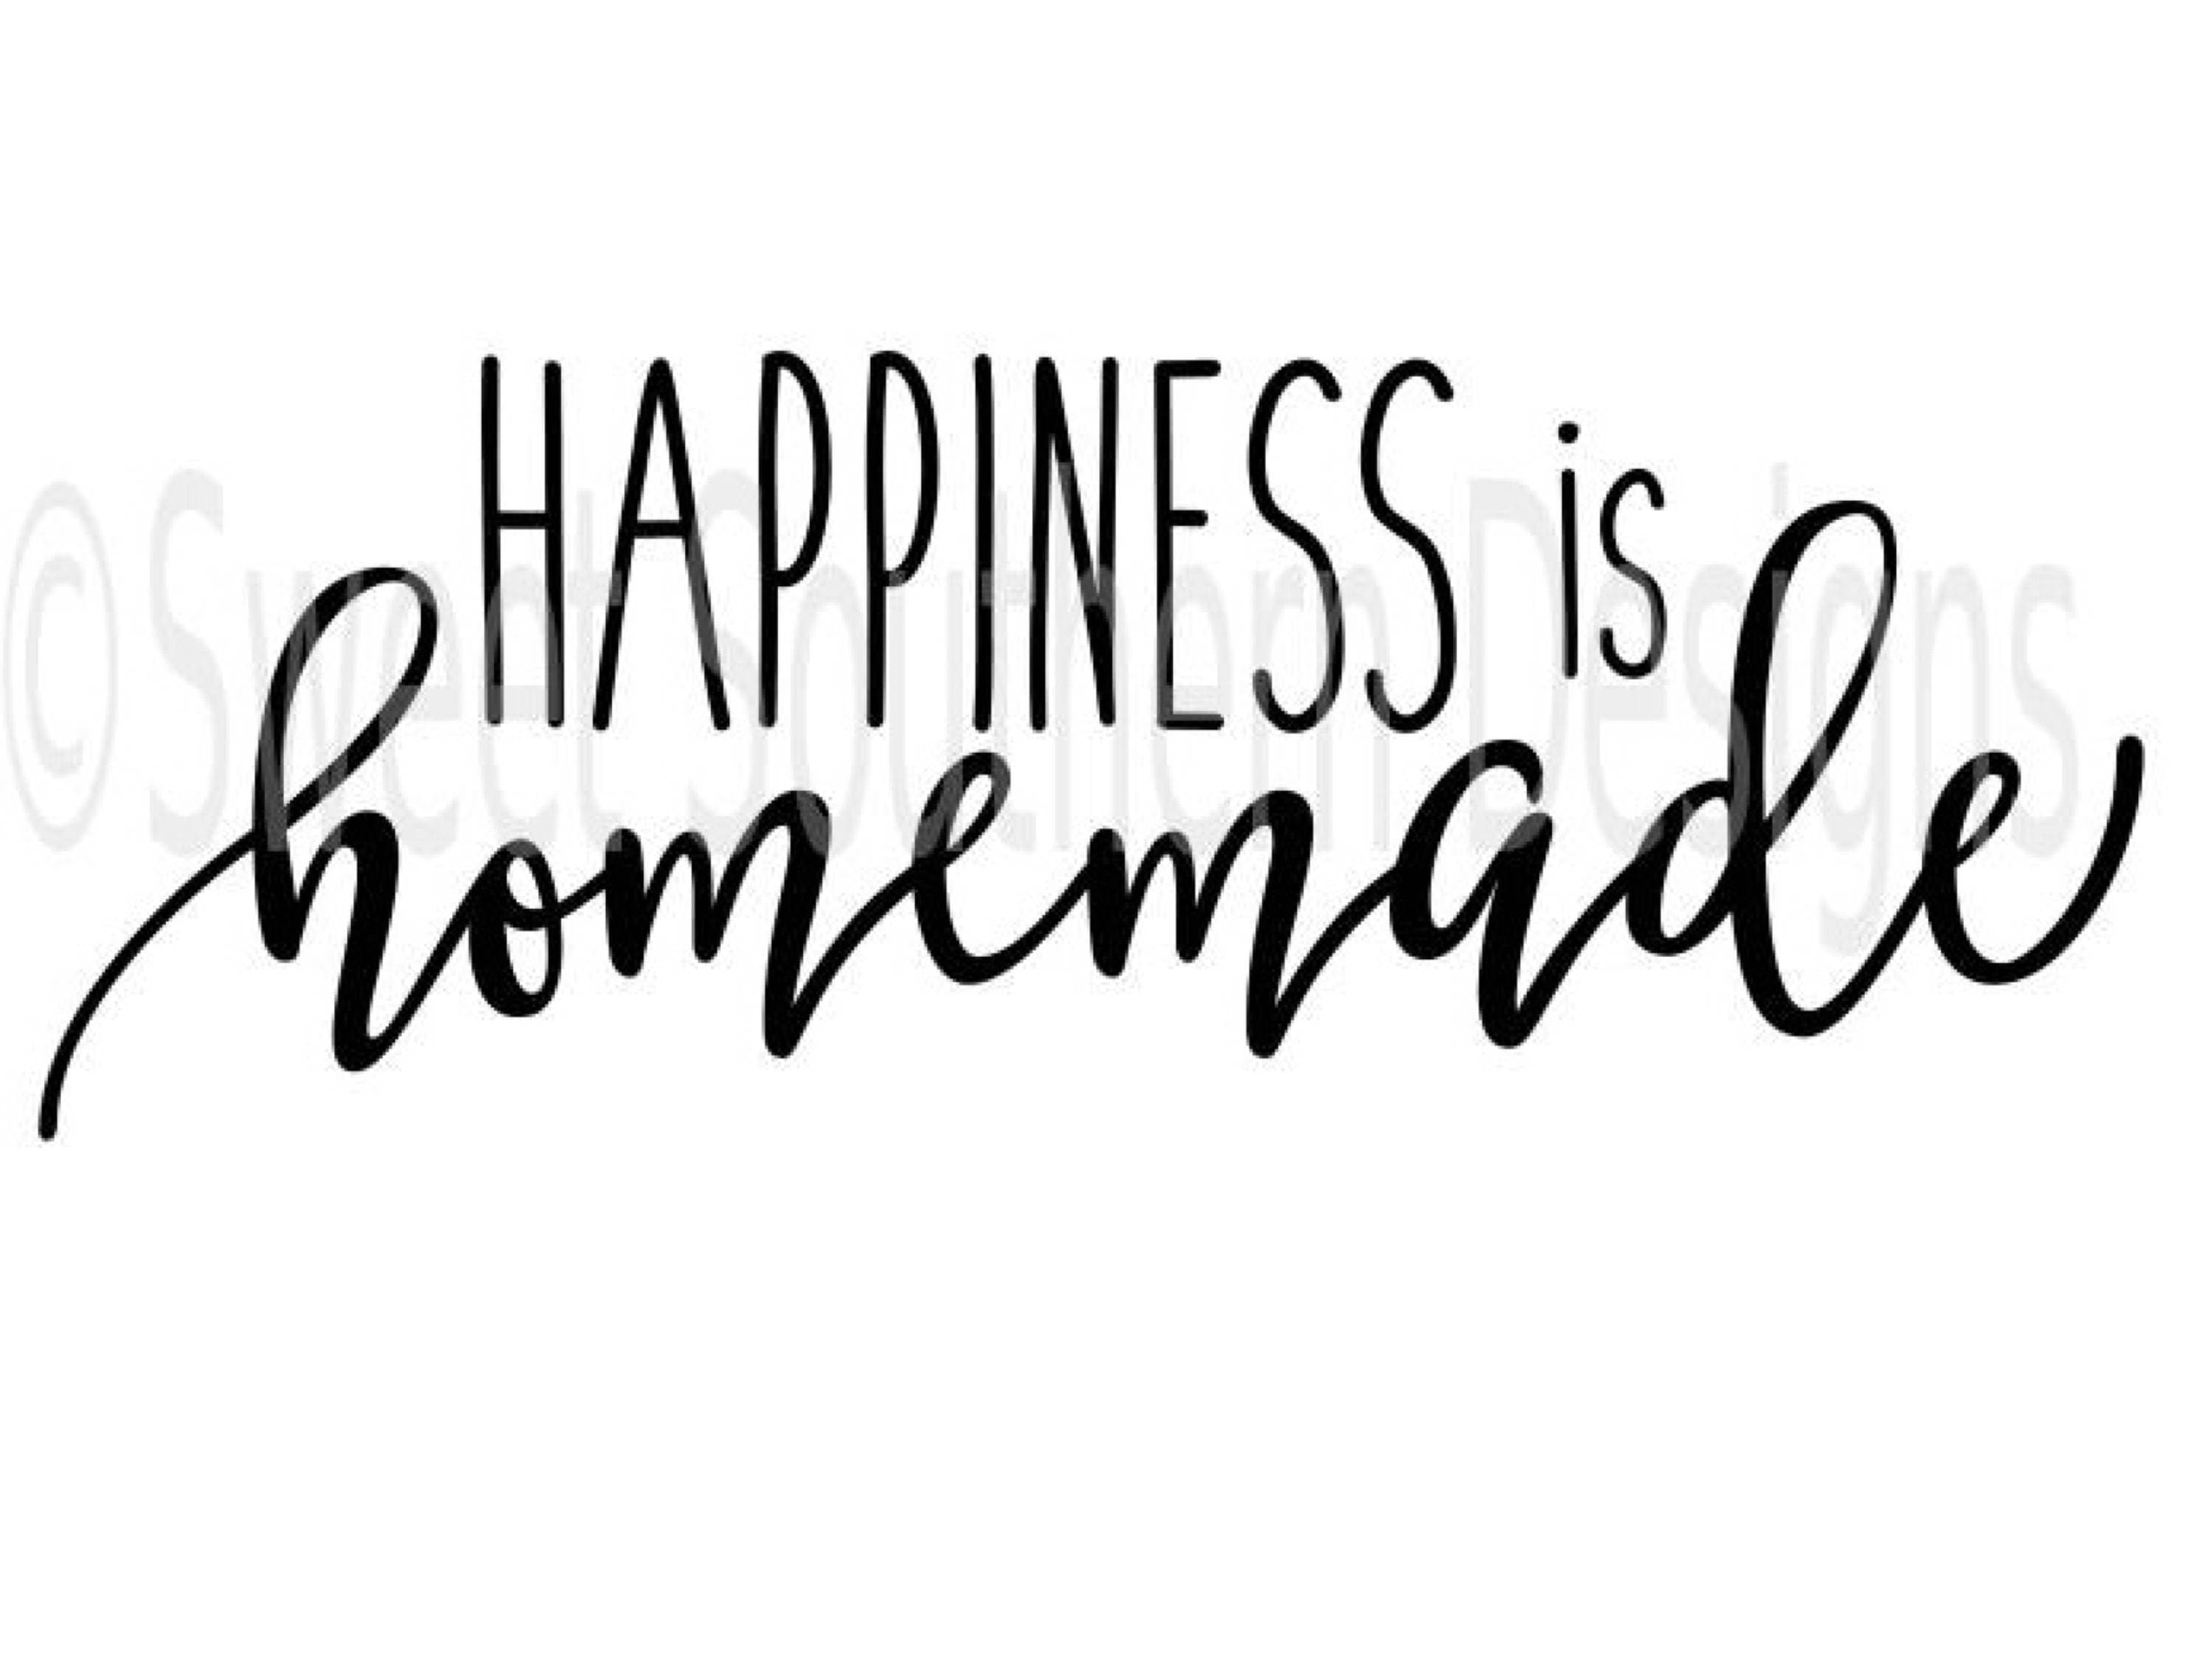 Shocking image for happiness is homemade